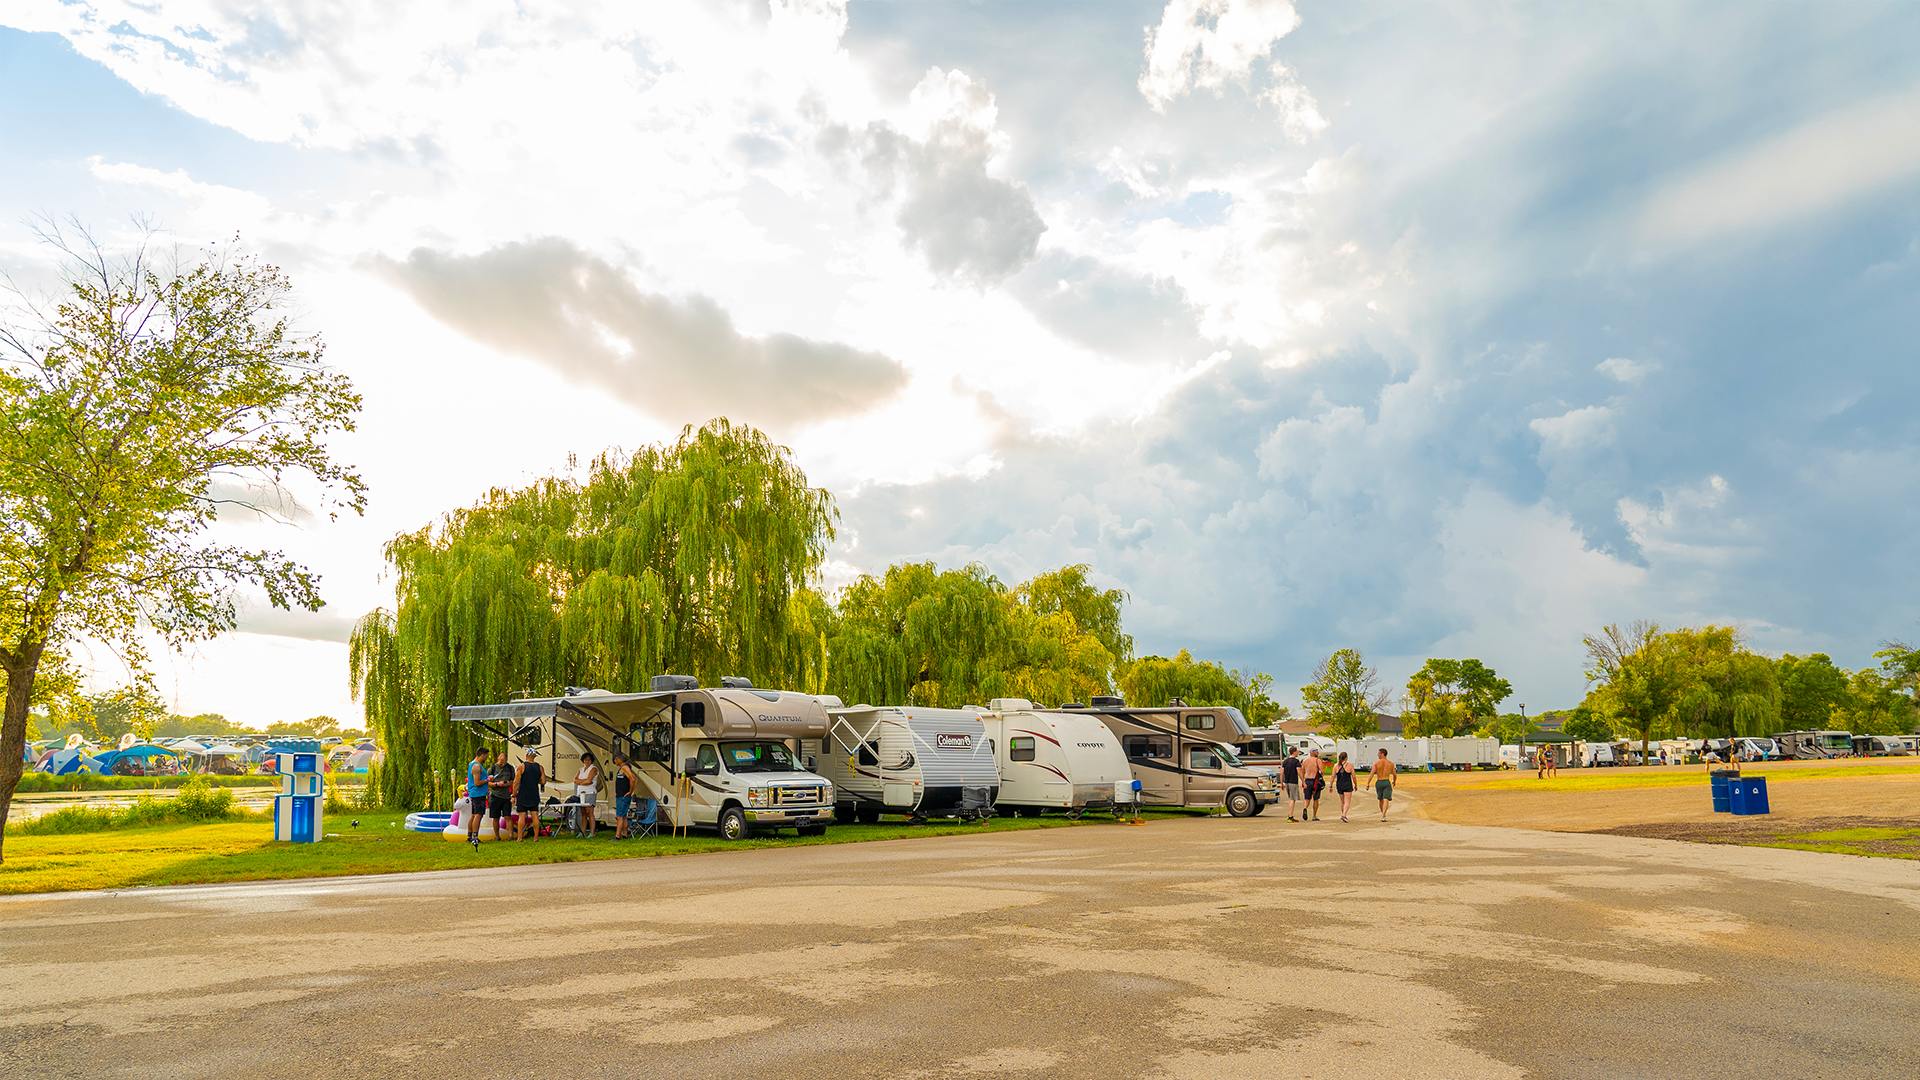 RV camping at the CrossFit Games